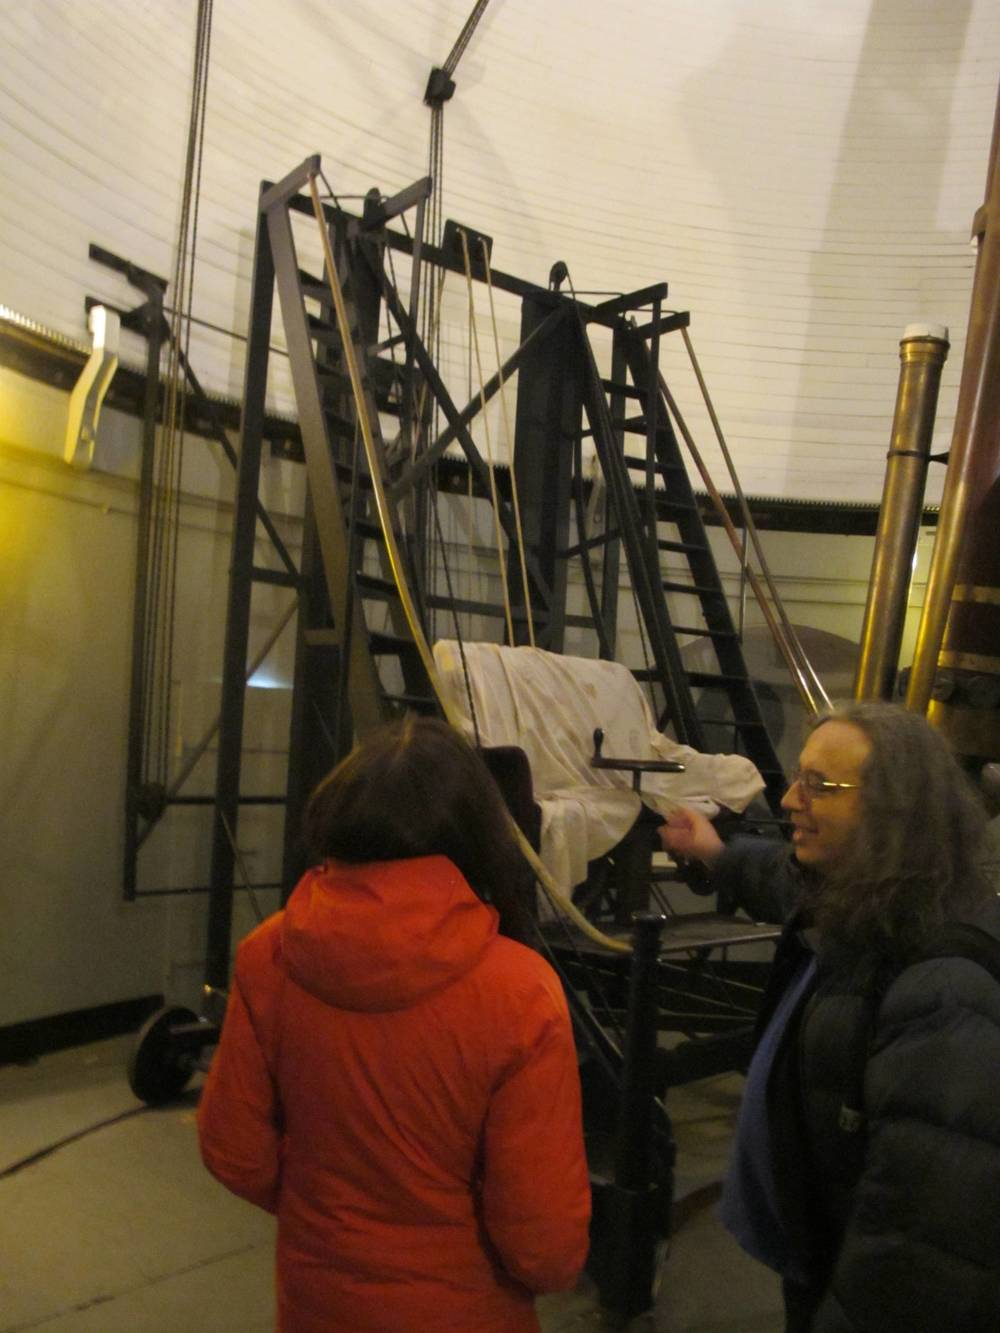 In showing us Harvard's 166-year-old Great Refractor telescope, Jonathan pointed out the step ladders that astronomers had to climb and descend while tracking the movement of stars and planets over the course of an evening.